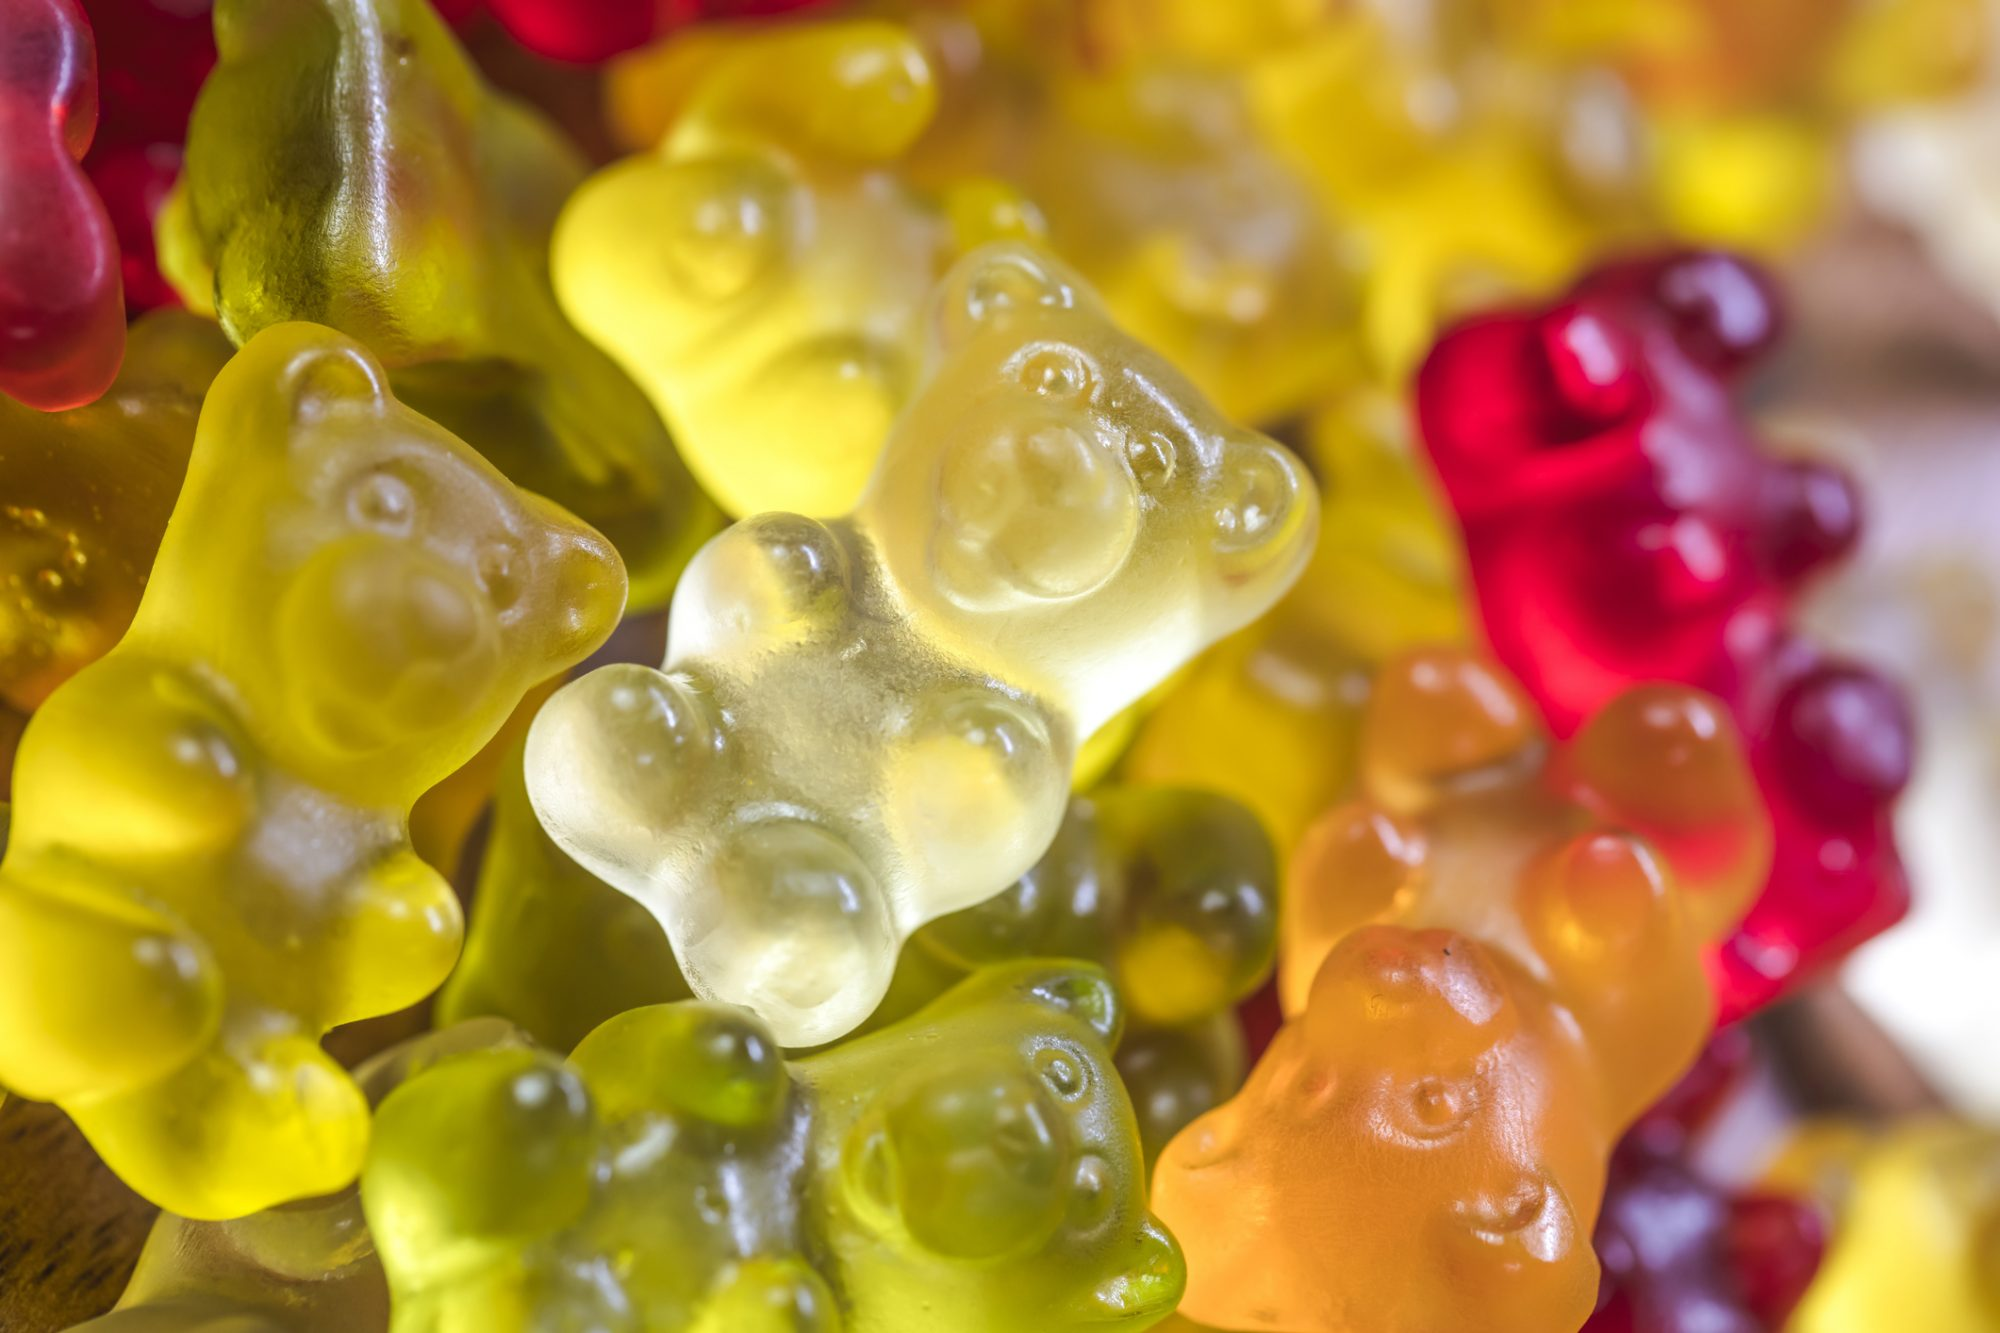 Close-up of gummy bears Candies